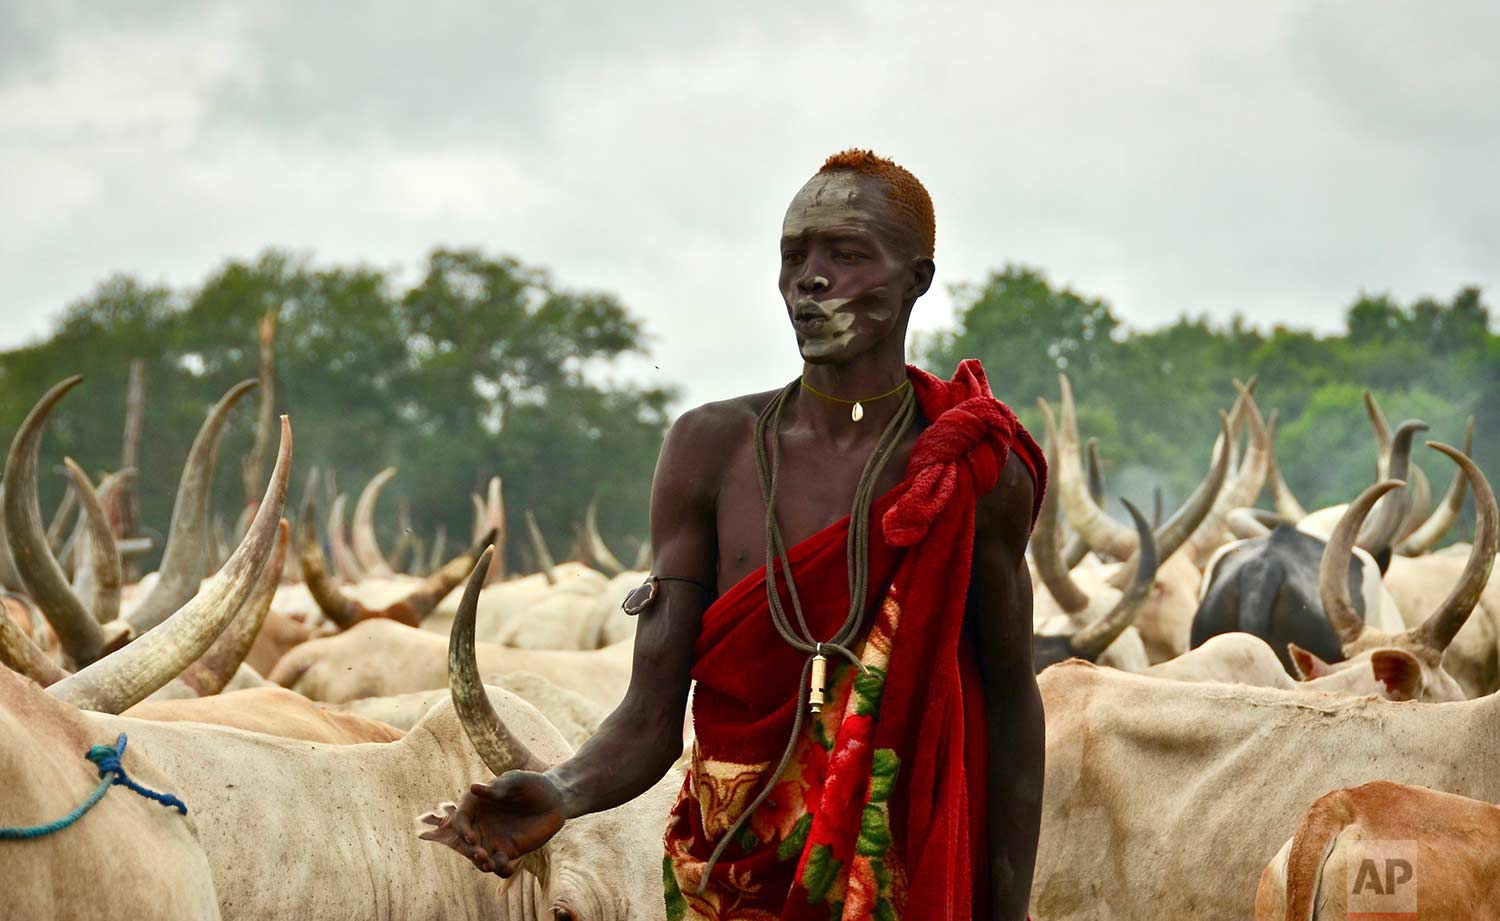 """In this photo taken Monday, July 31, 2017, a young South Sudanese man tends to his herd of cattle at a camp outside the town of Rumbek, South Sudan. Cows are used for payments and dowries, which Human Rights Watch calls a """"key driver of child marriage"""" as families see daughters as a source of wealth. (AP Photo/Mariah Quesada)"""